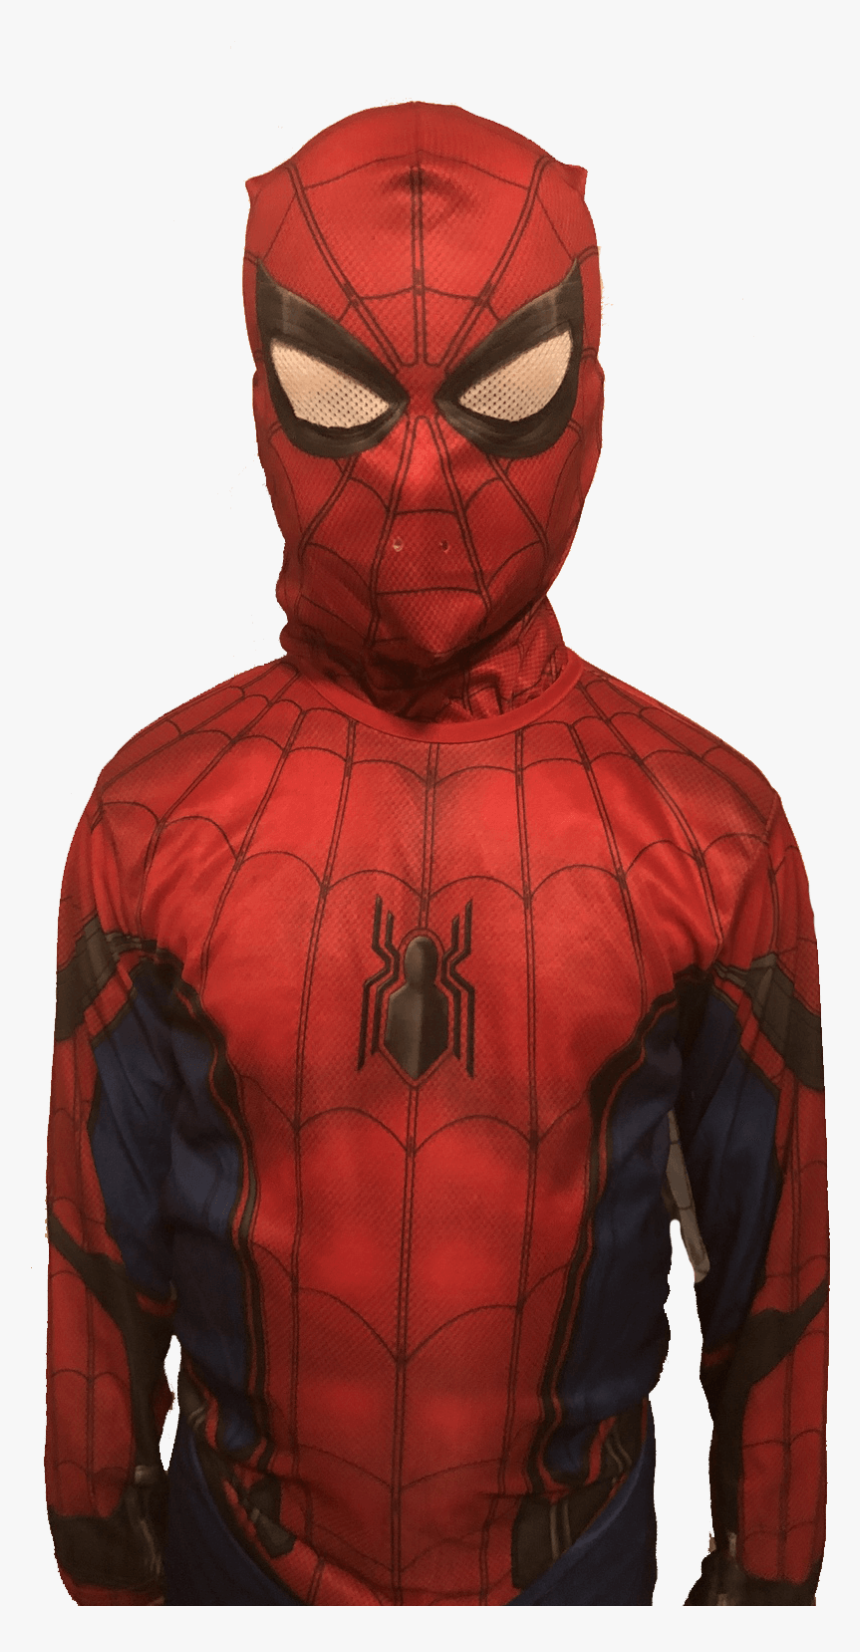 Spiderman Standing Up, HD Png Download, Free Download